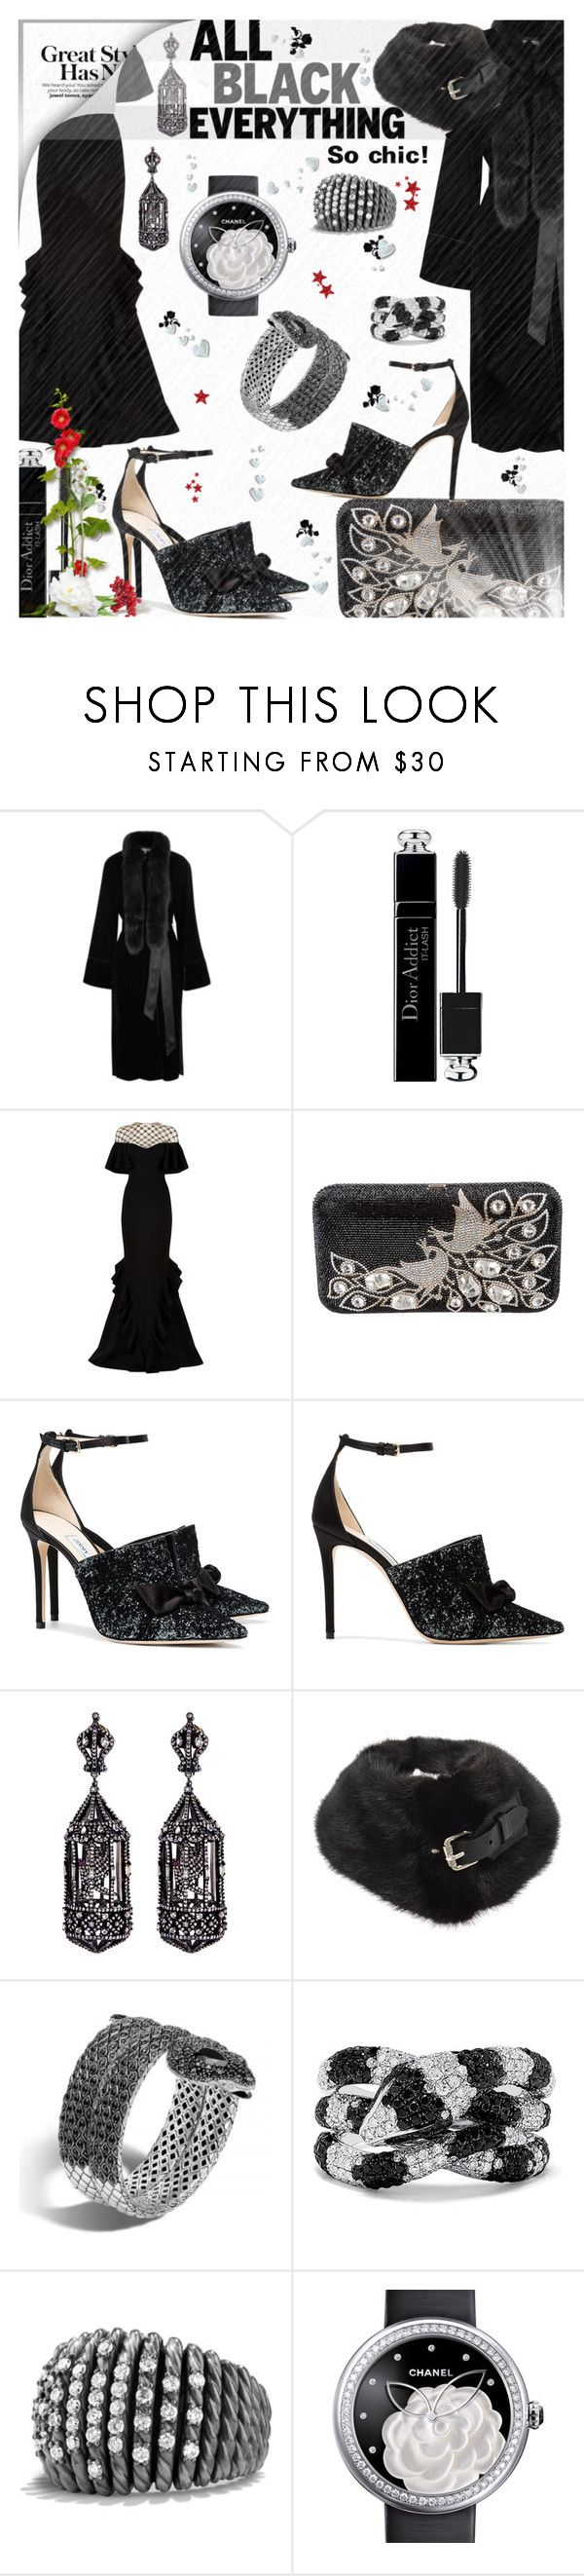 """Mission Monochrome: All-Black Outfit n°2"" by tempestaartica ❤ liked on Polyvore featuring Elizabeth and James, Christian Dior, Rachel Gilbert, Judith Leiber, Jimmy Choo, Amrapali, Louis Vuitton, John Hardy, Effy Jewelry and David Yurman"